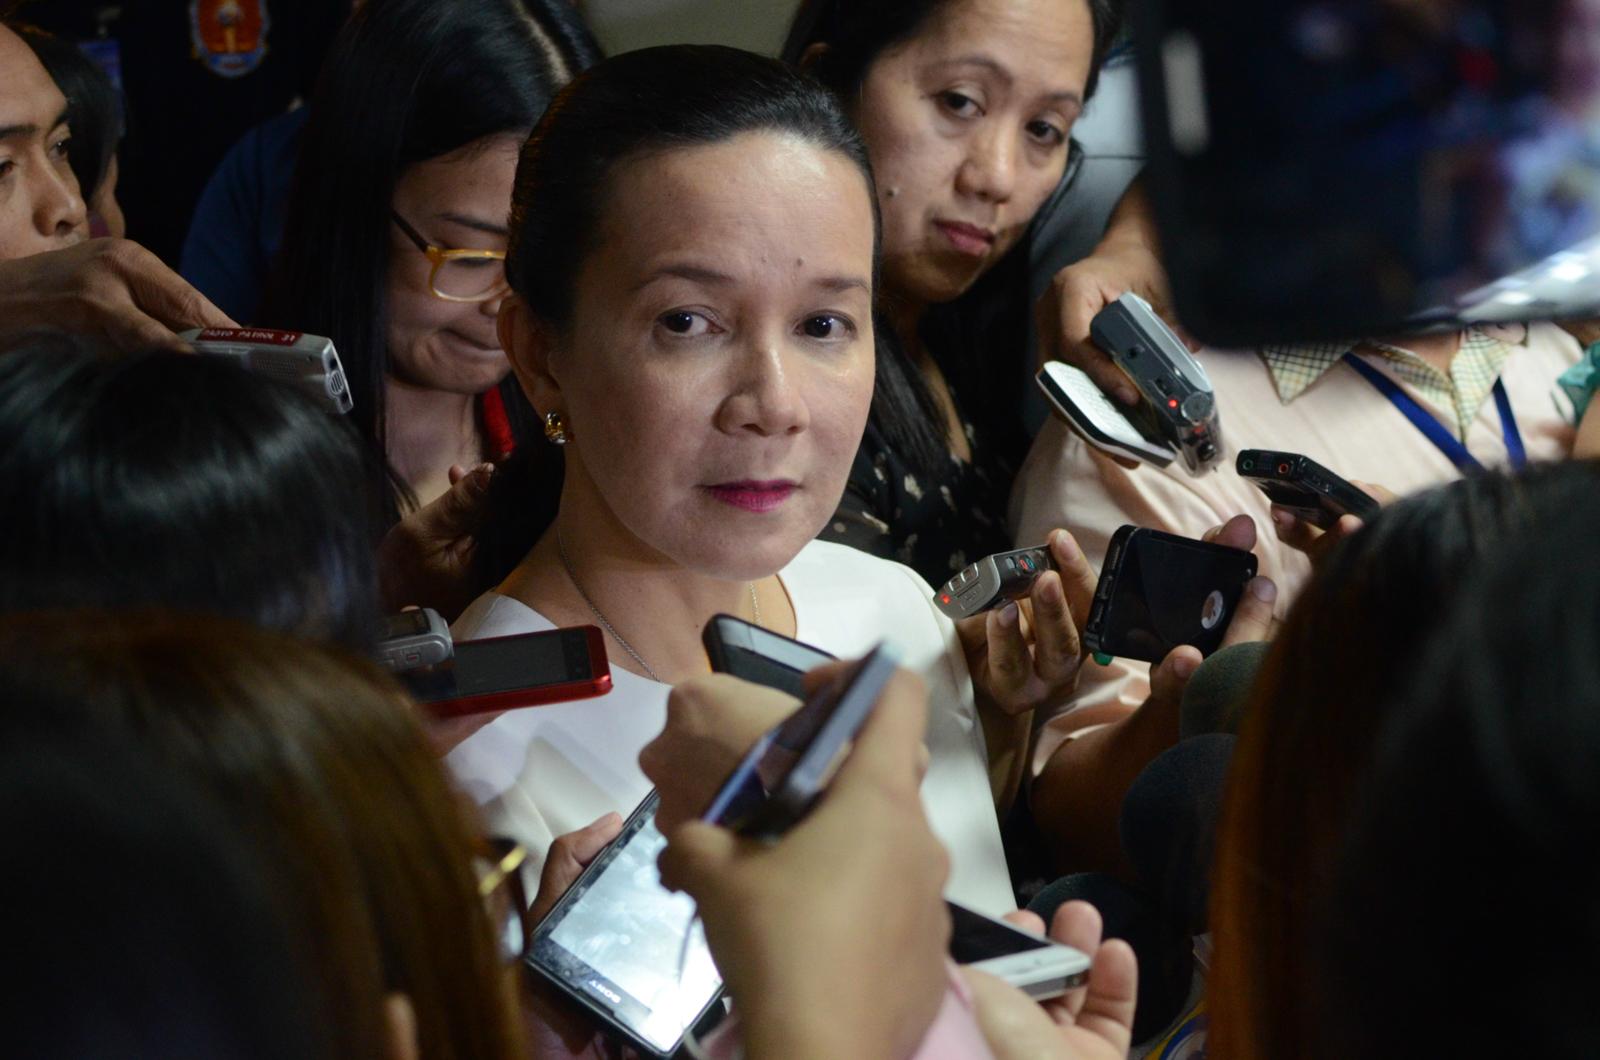 'I AM QUALIFIED TO RUN FOR PRESIDENT': Senator Grace Poe responds to allegations made by UNA spokesperson Toby Tiangco. Photo by Alecs Ongcal/Rappler